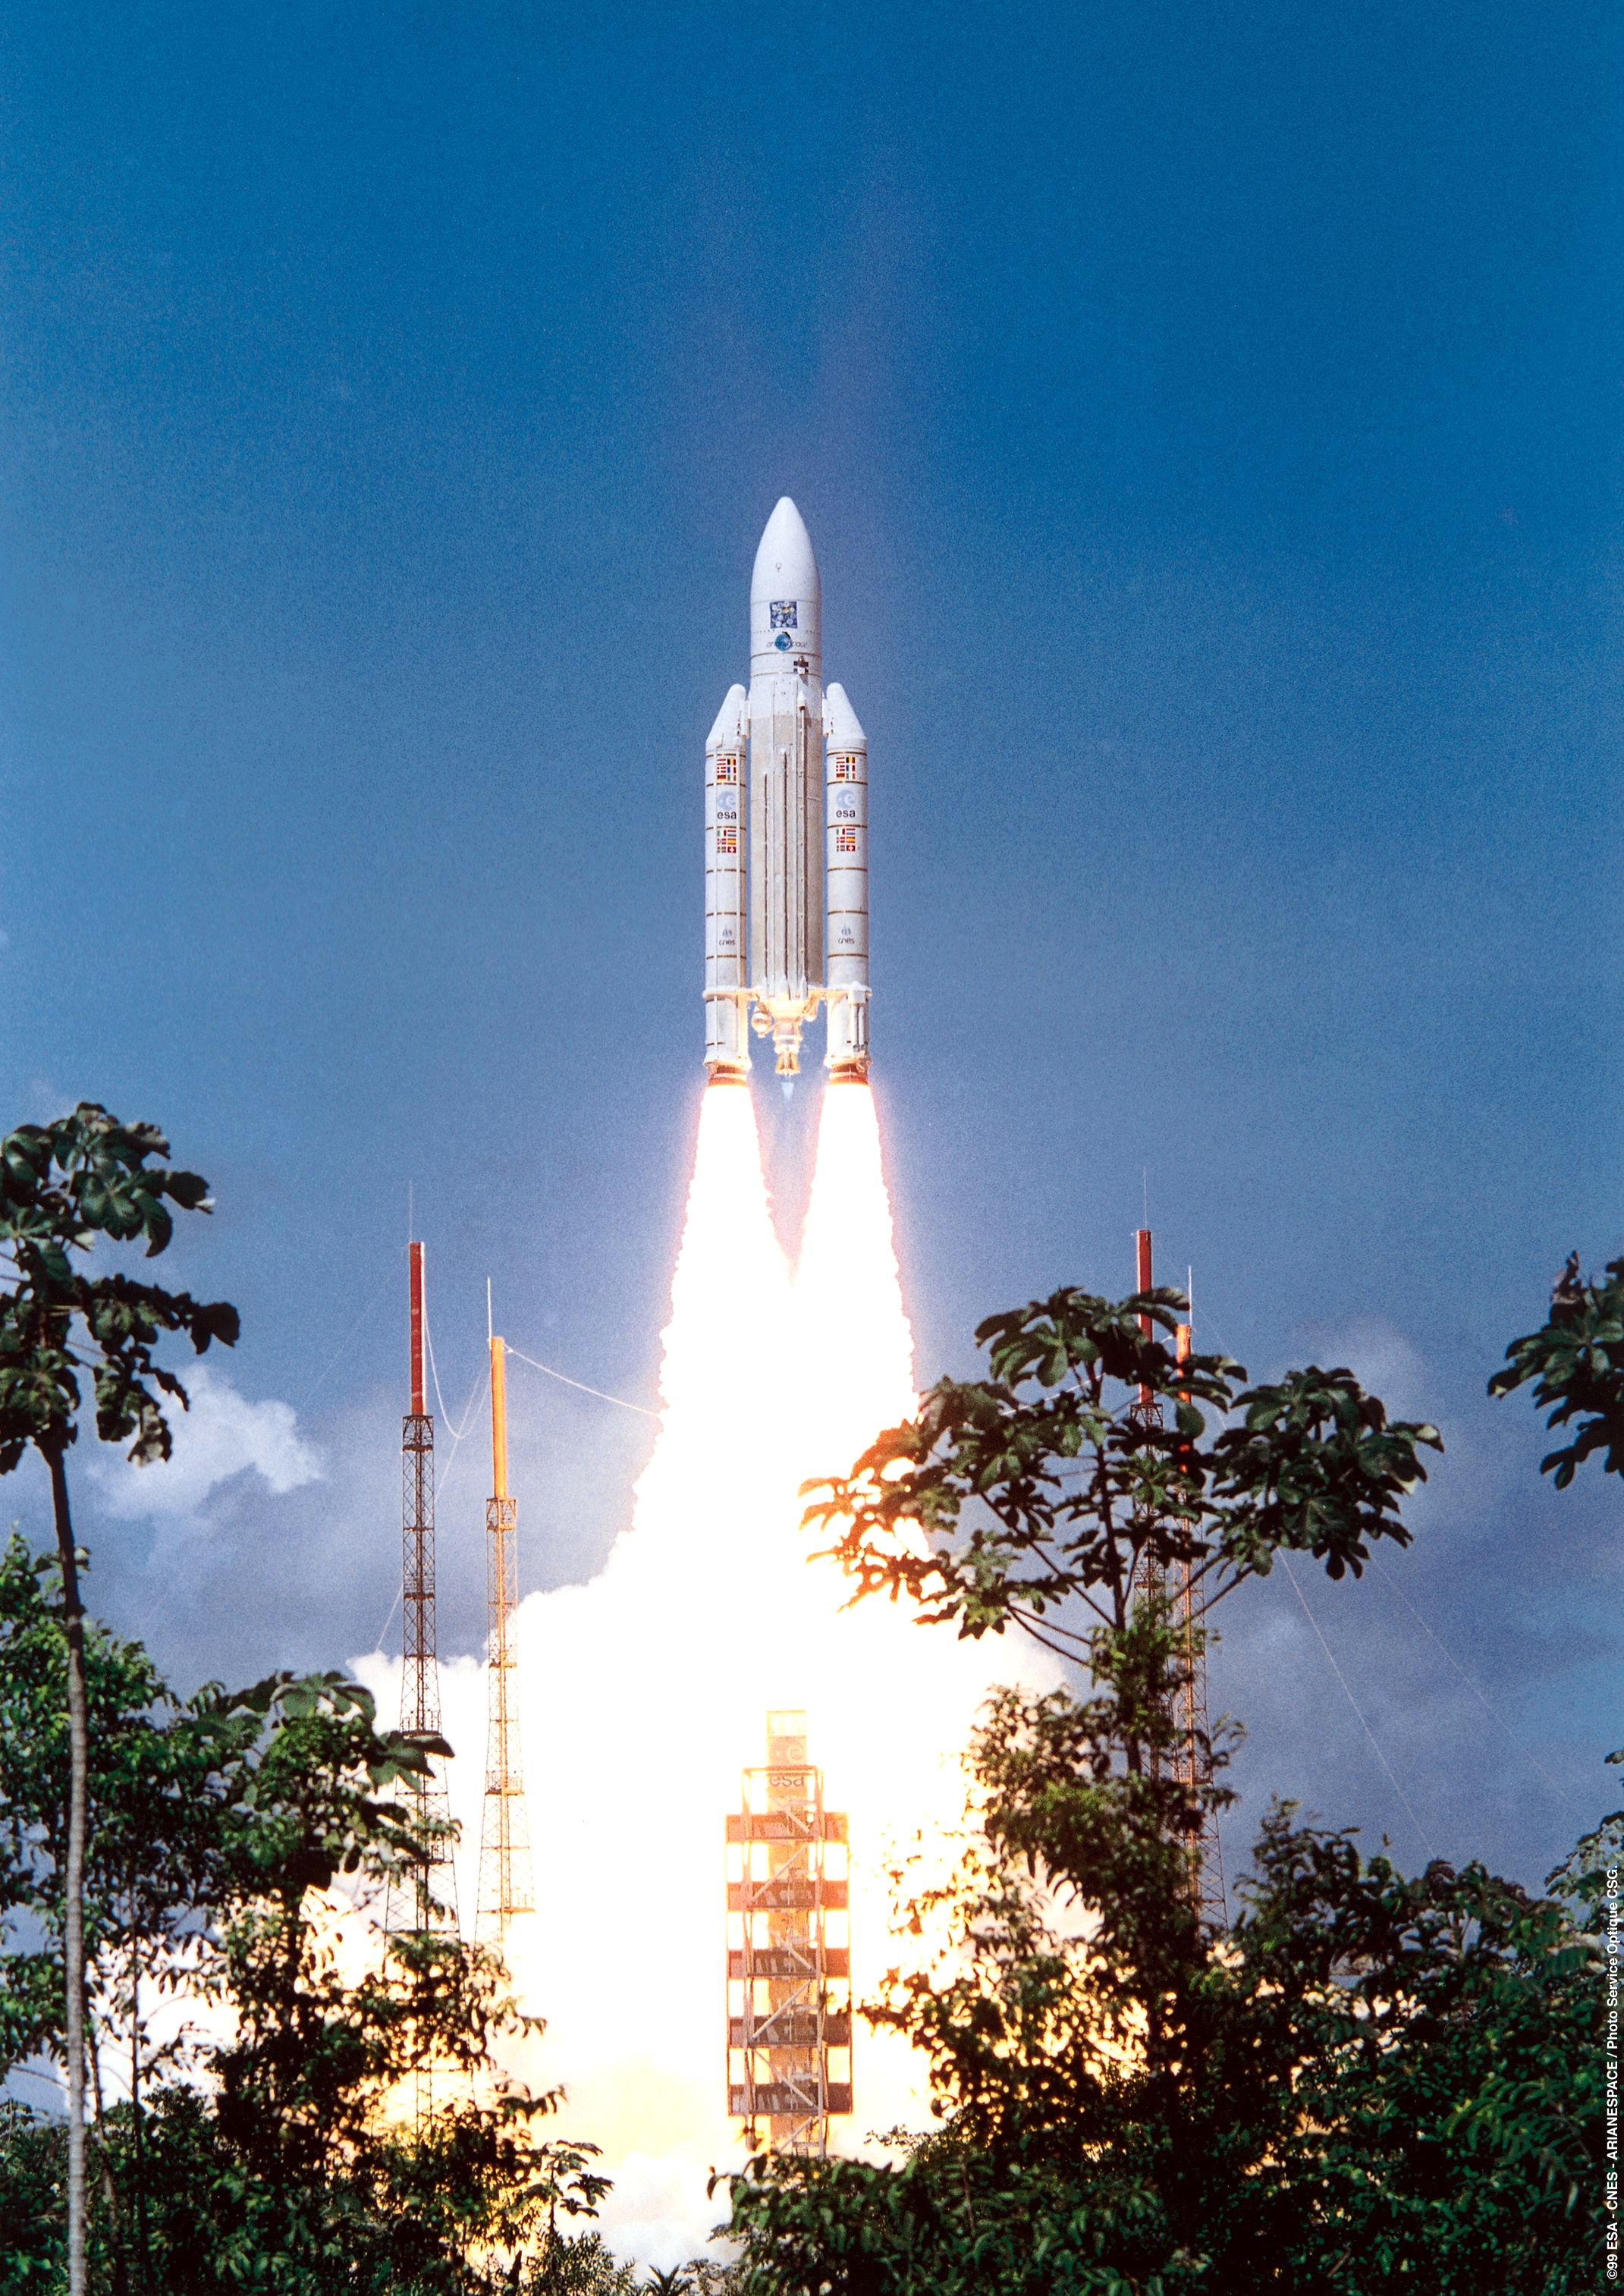 ariane_xmm_launch.jpg